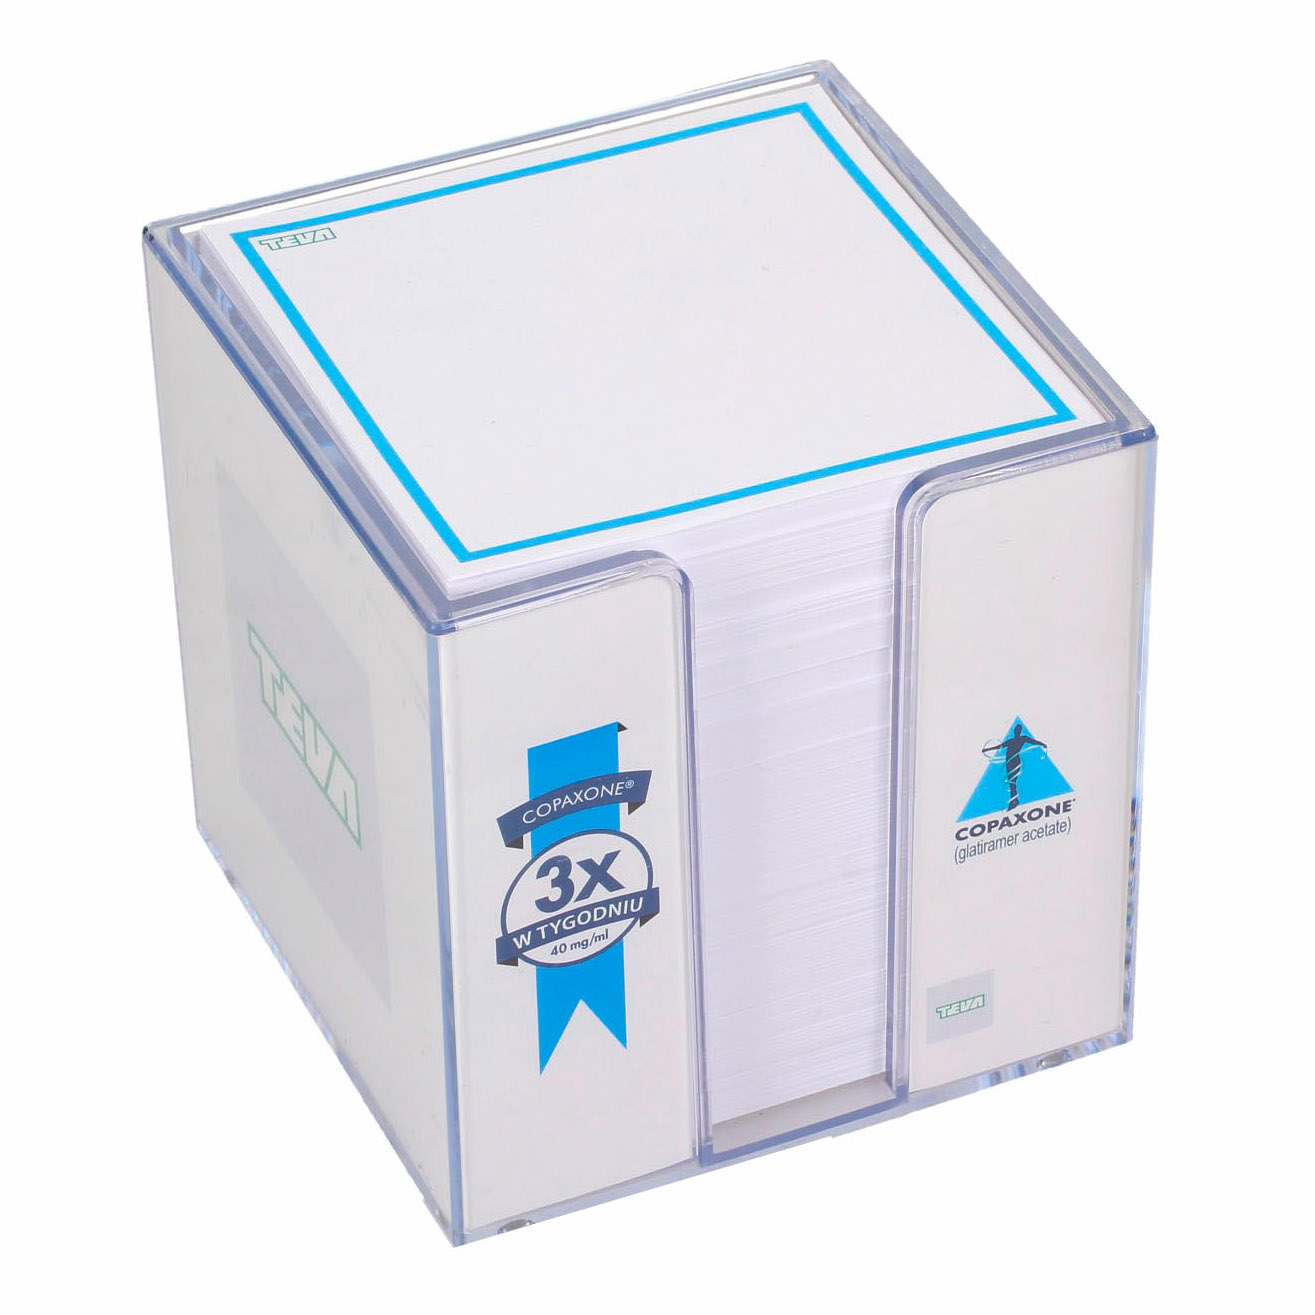 6.6 Note pads in plastic boxes SNT-66 (SNT-66B)